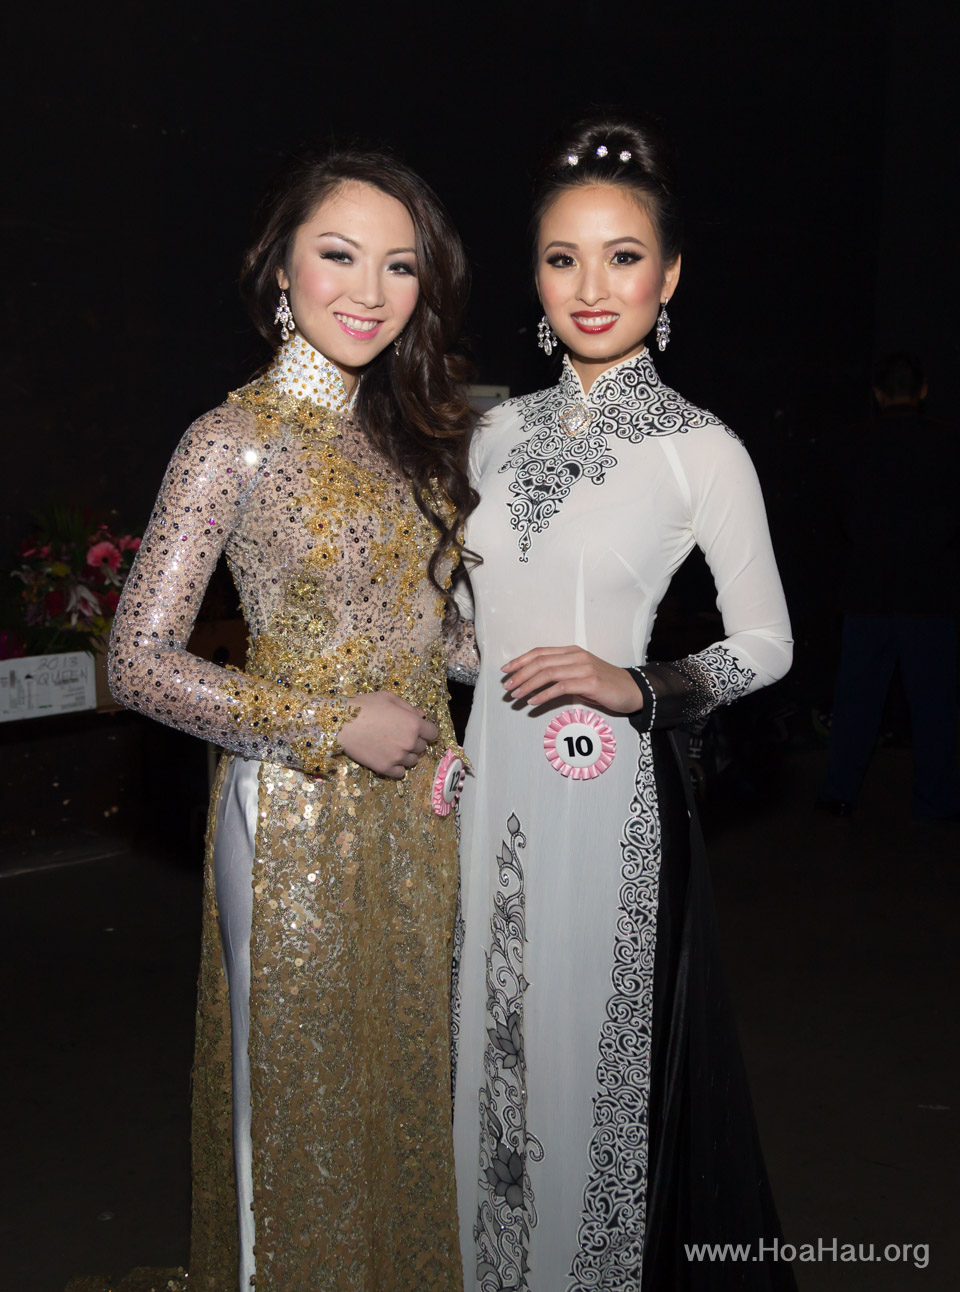 Miss Vietnam of Northern California 2014 - Hoa Hau Ao Dai Bac Cali 2014 - Behind the Scenes - Image 236